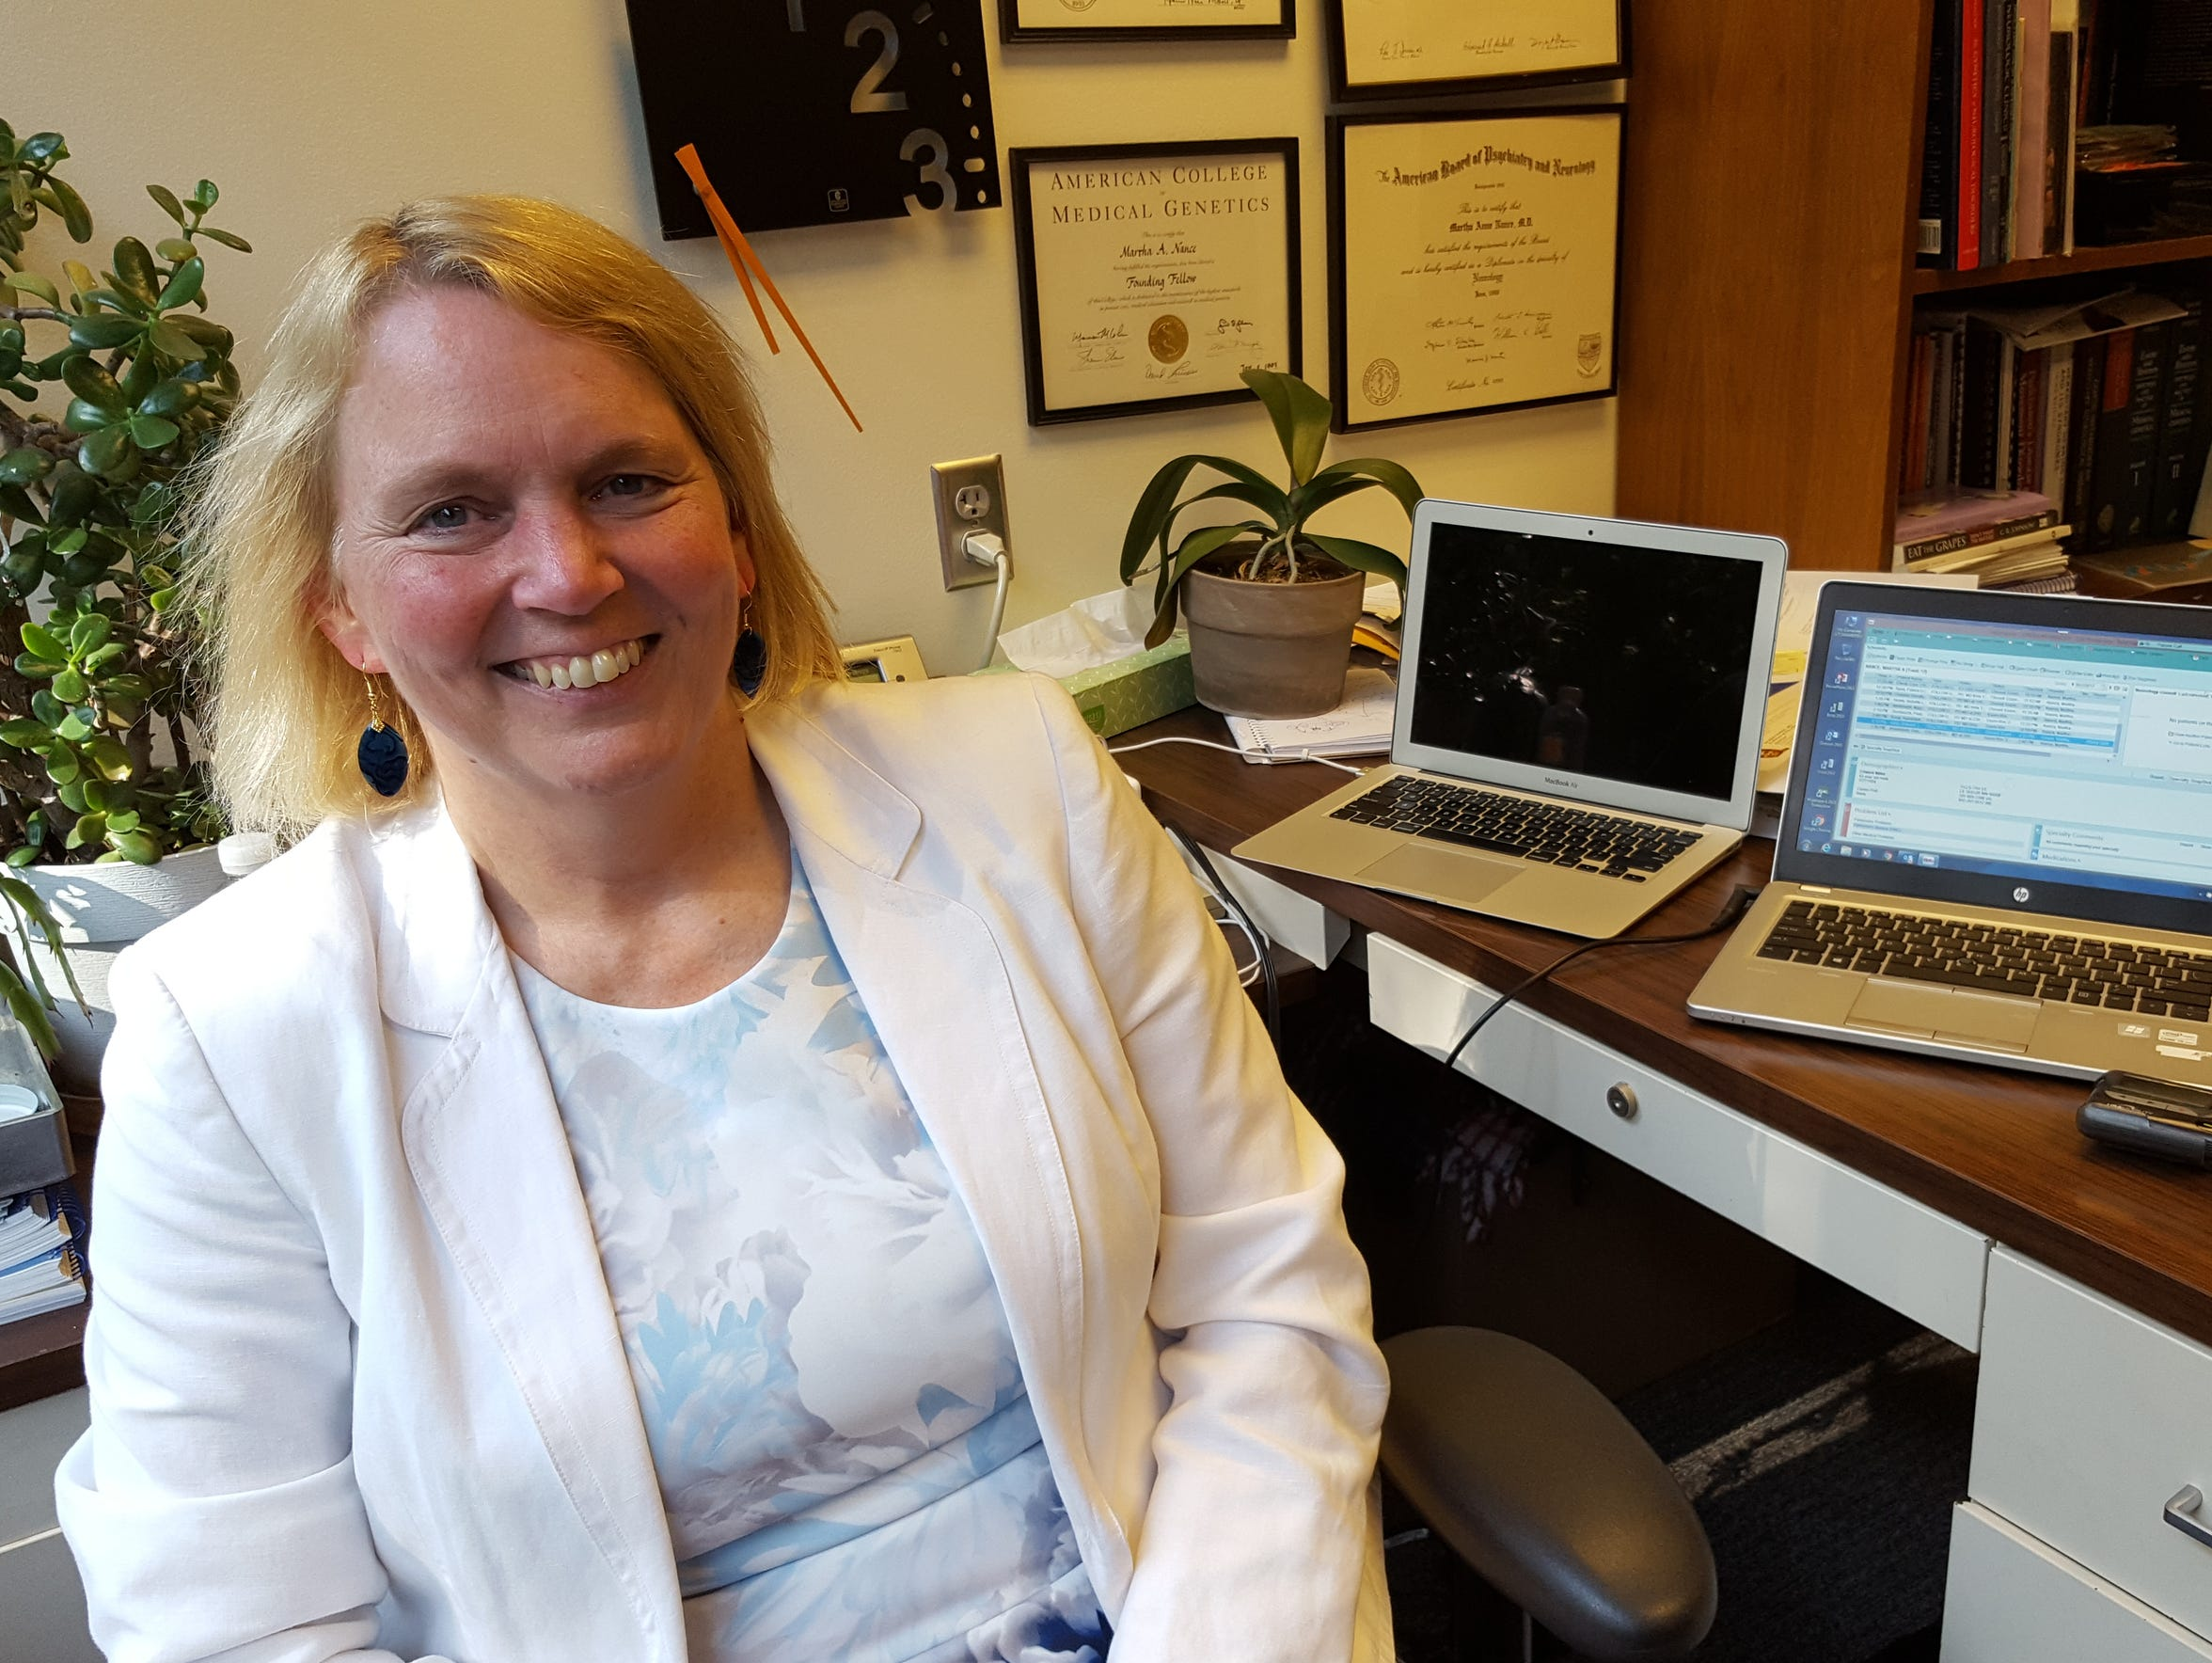 Dr. Martha Nance, an expert in genetics, poses for